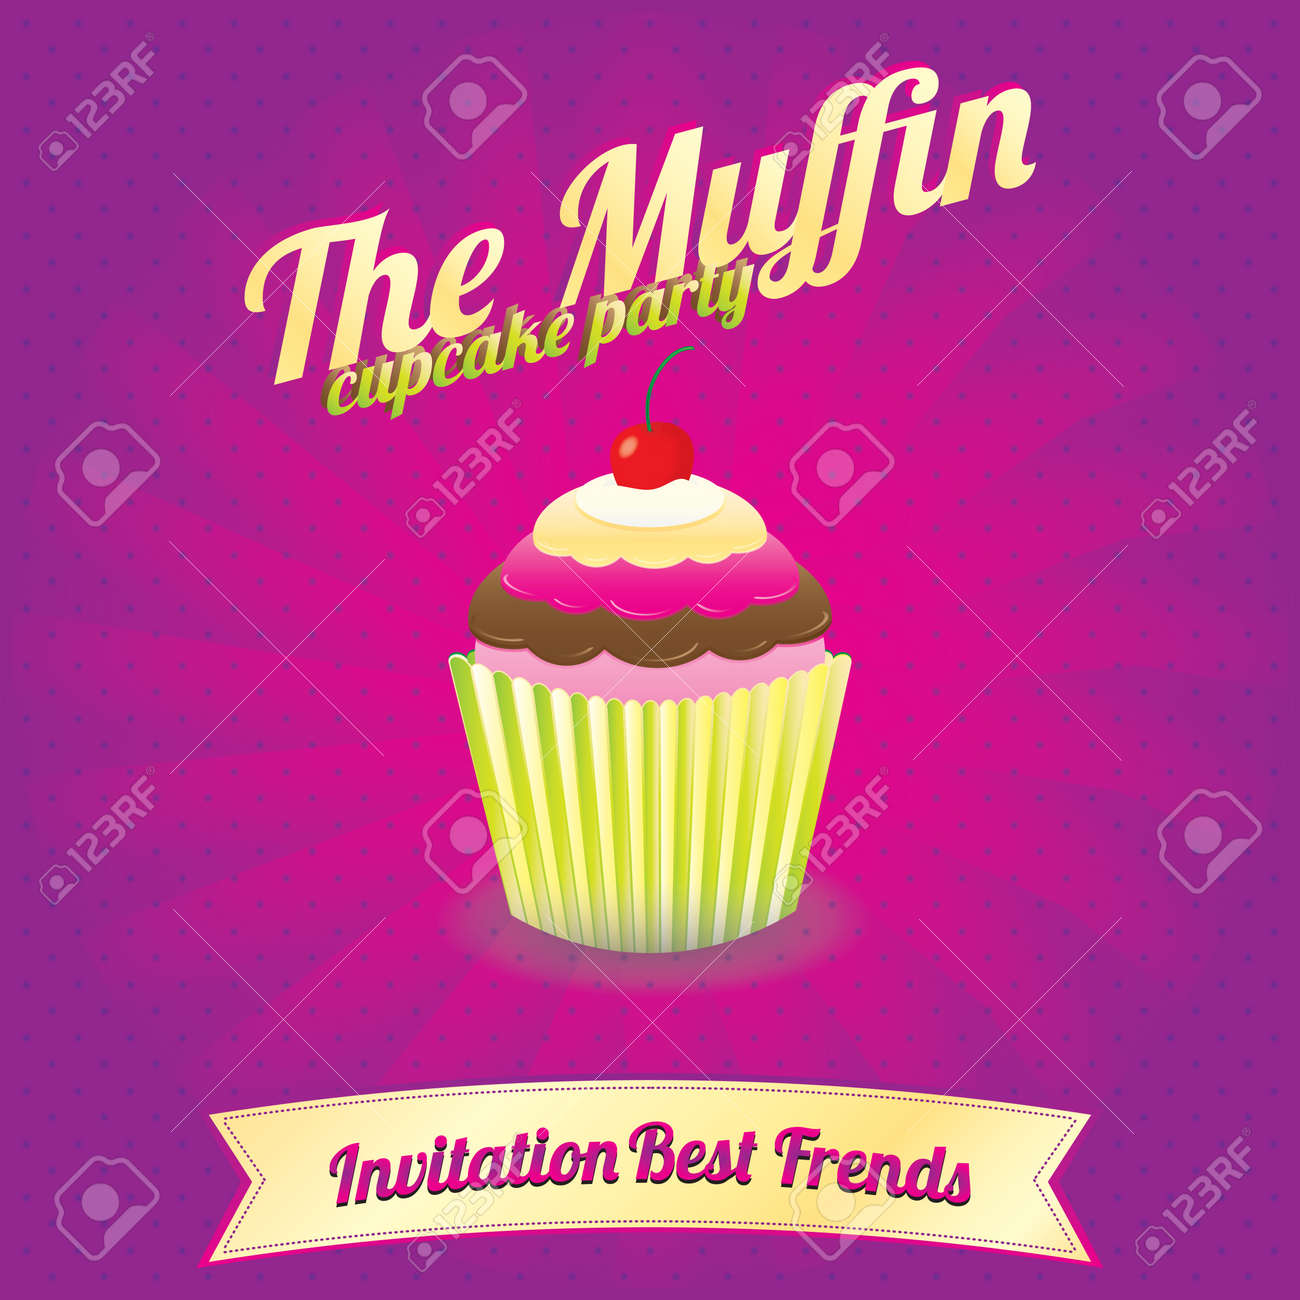 The Muffin Cupcake Party Invitation Best Frends Royalty Free ...